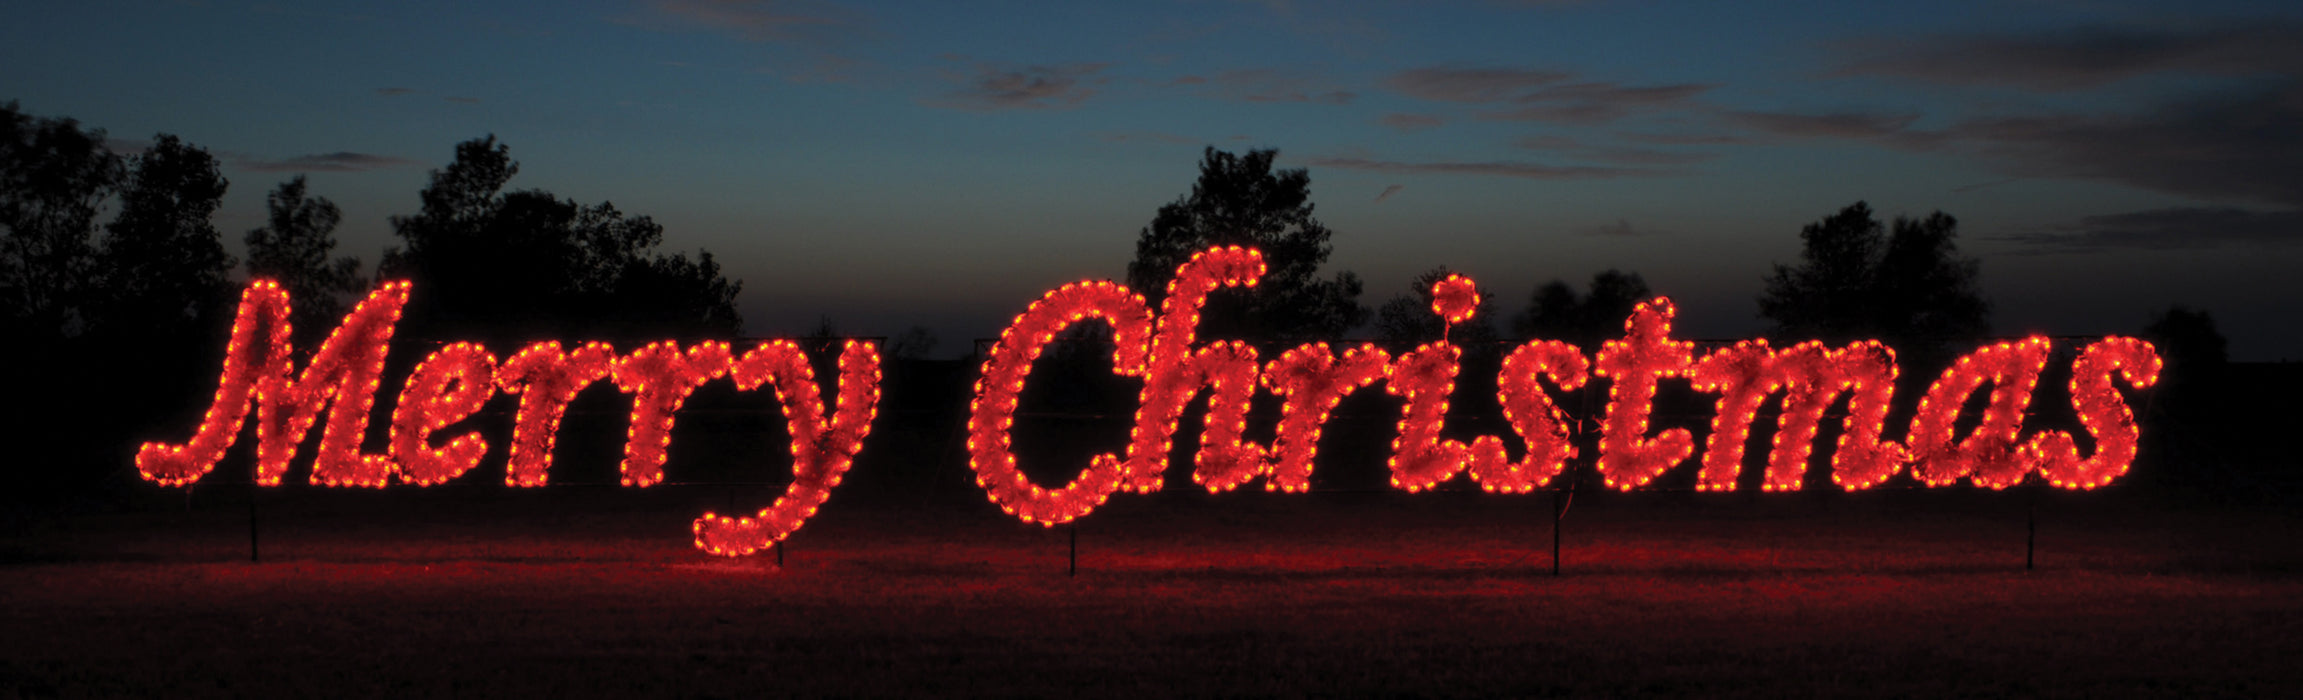 giant, large, commercial-grade, outdoor, sign, script, merry Christmas, holiday, LED, bulb, C7, red, garland, light, quality, durable, traditional, yard motif, 2021